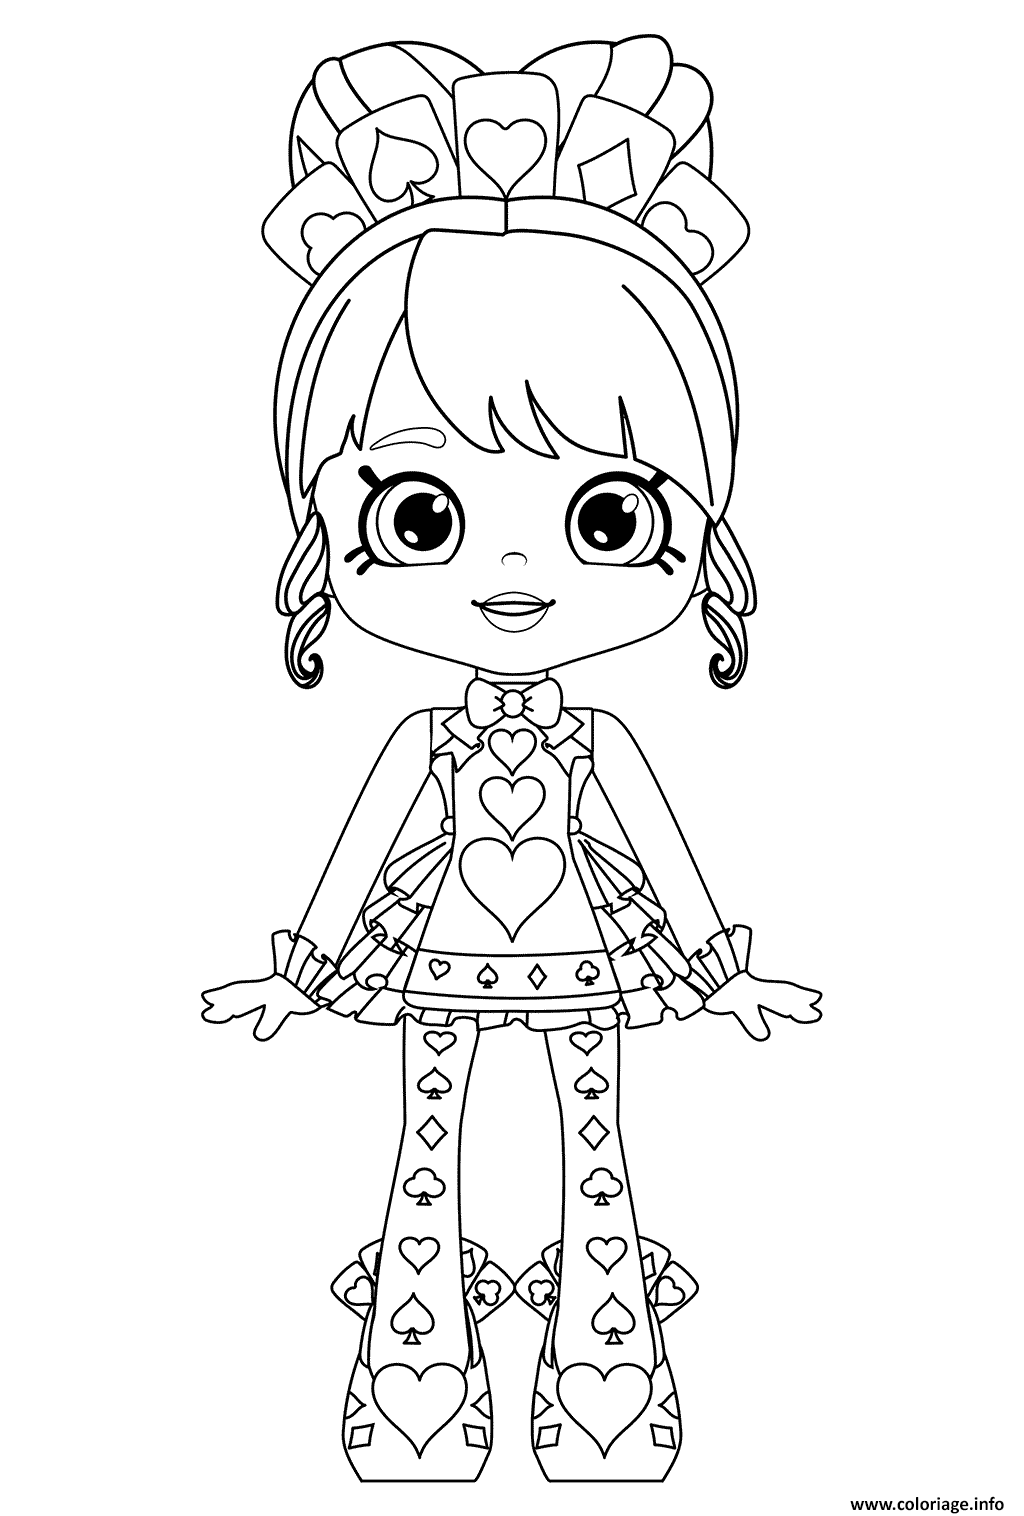 Coloriage Shopkins Shoppies Queenie Hearts Or Queen Of Hearts Dessin à Imprimer